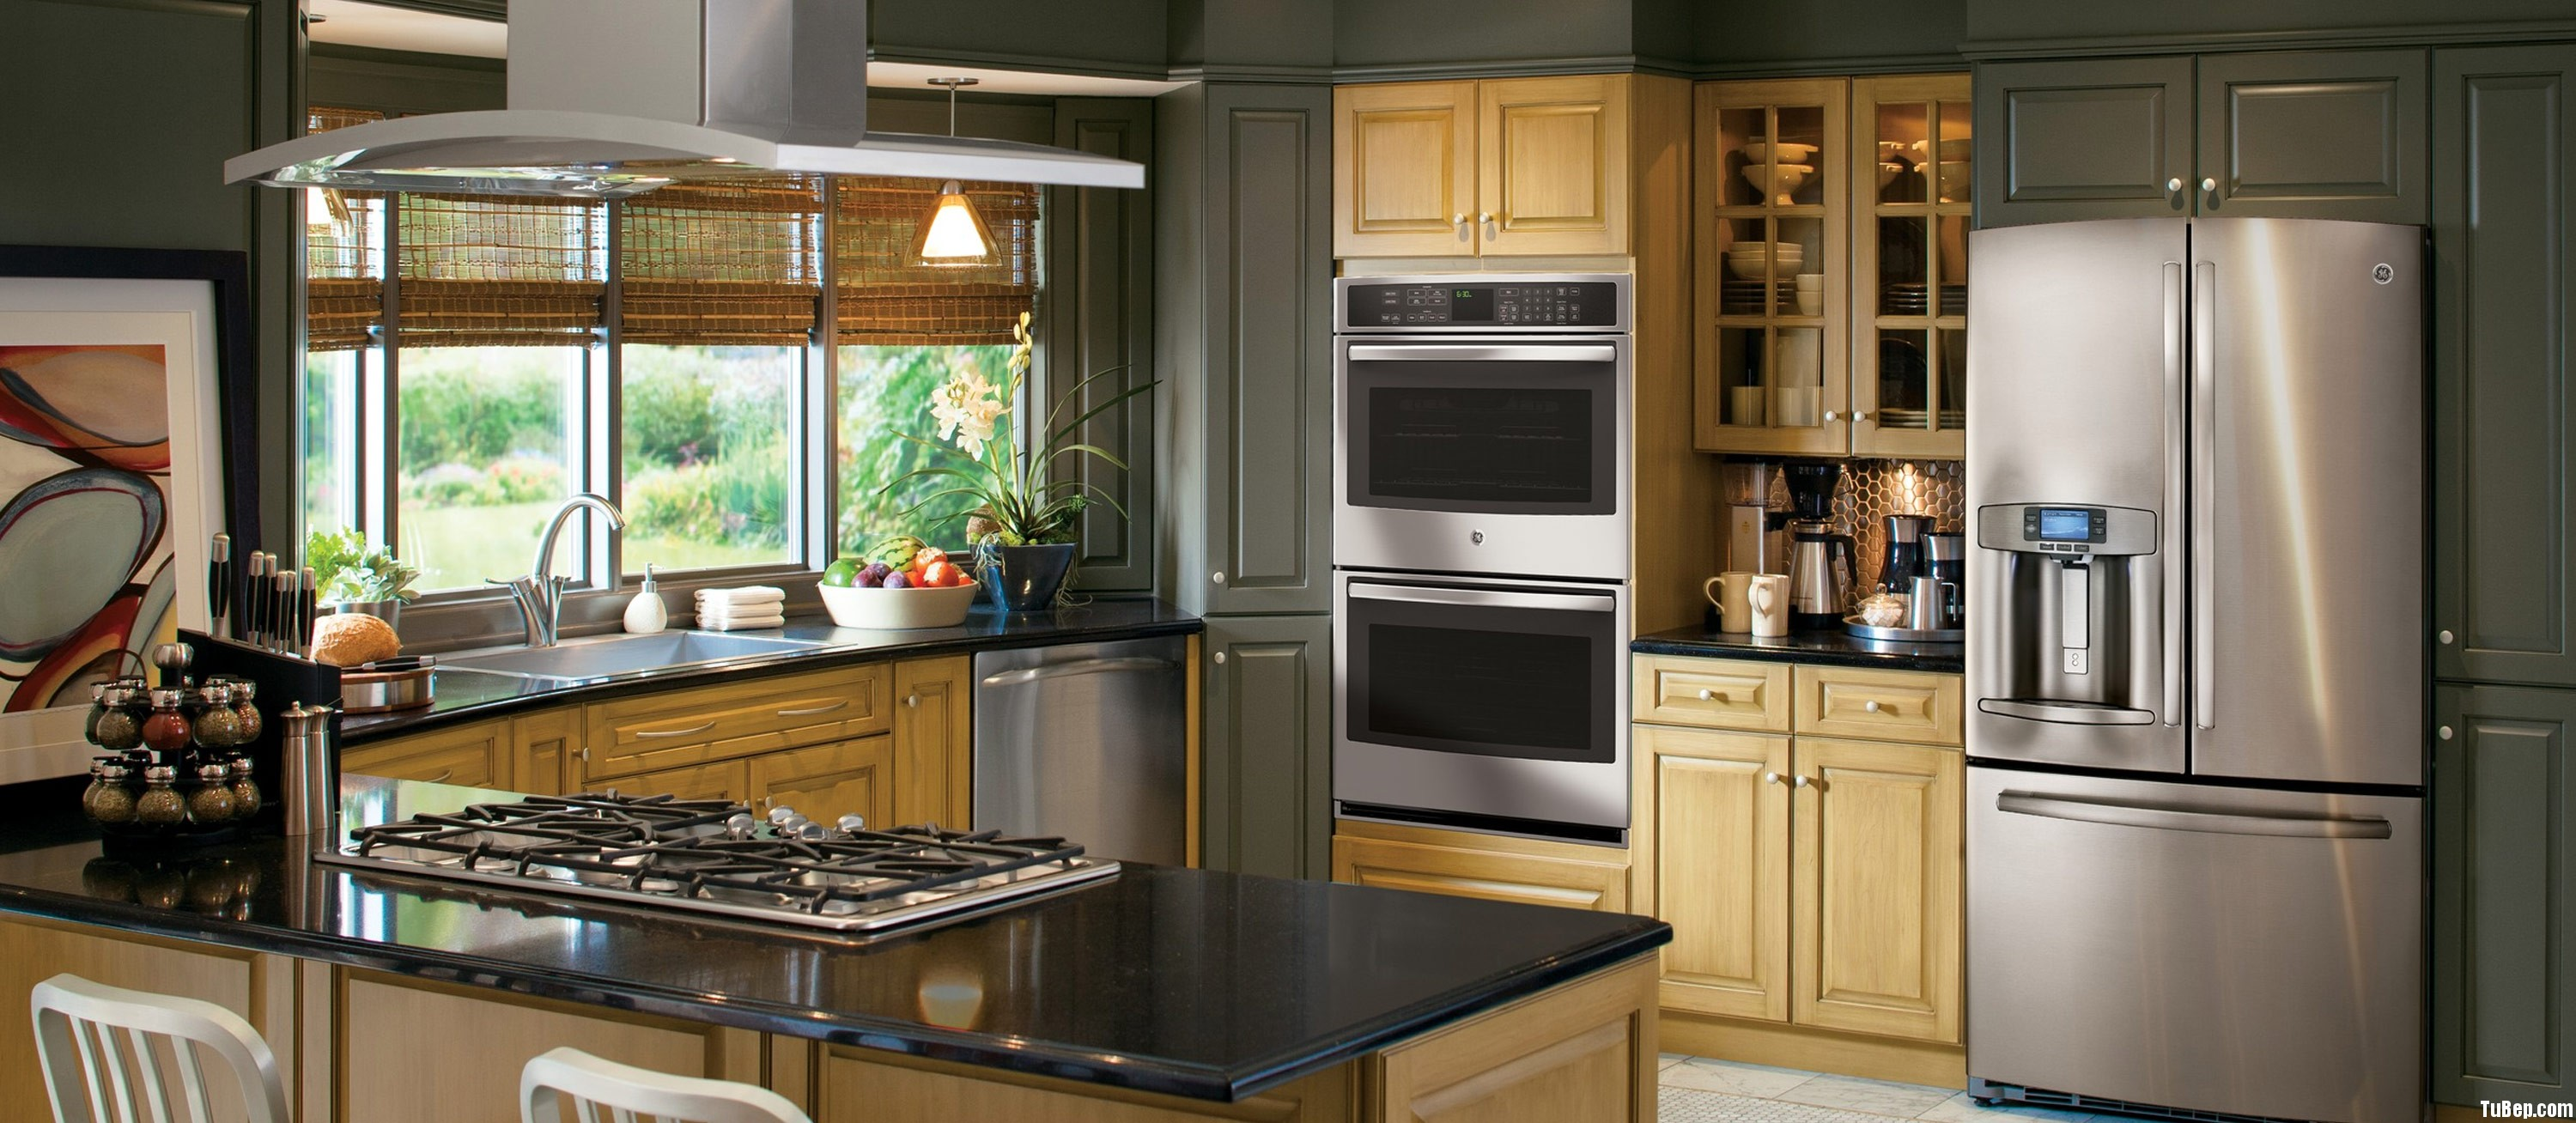 06_Green_Kitchen_3000x1308